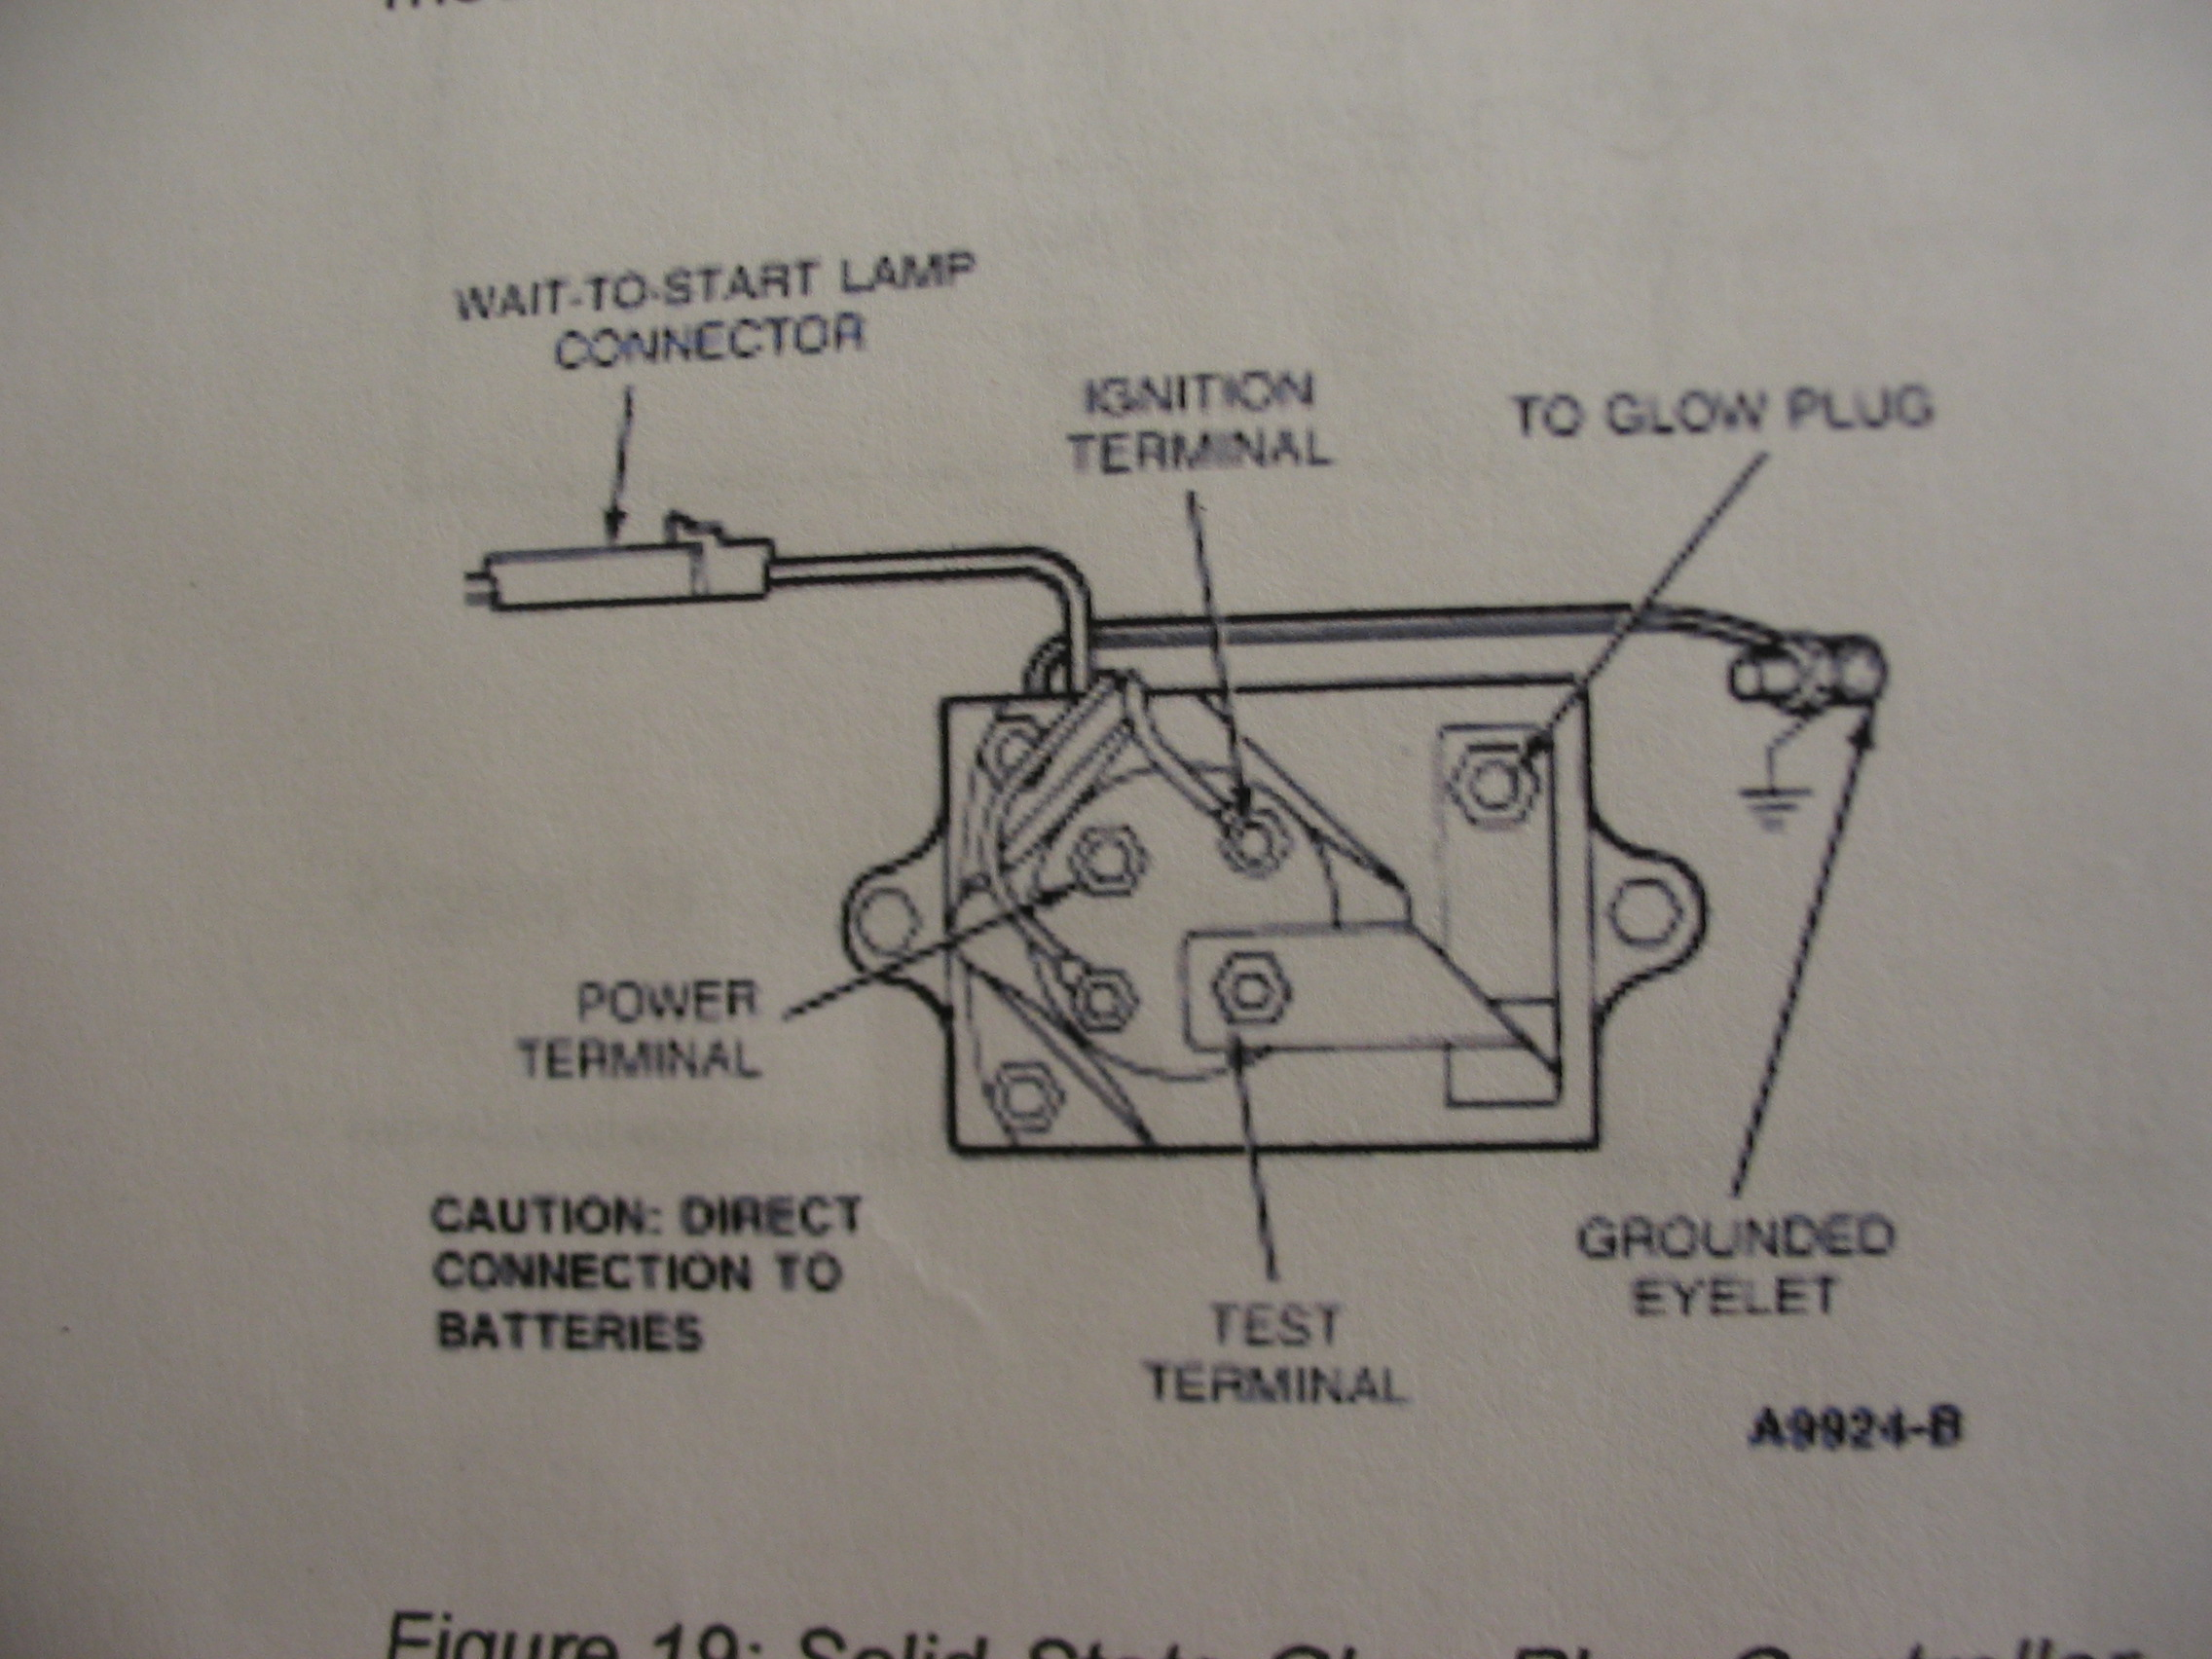 Ford Glow Plug Relay Wiring Diagram Worksheet And 2002 F250 Diesel Diagrams Rh Wizard Com Powerstroke 60